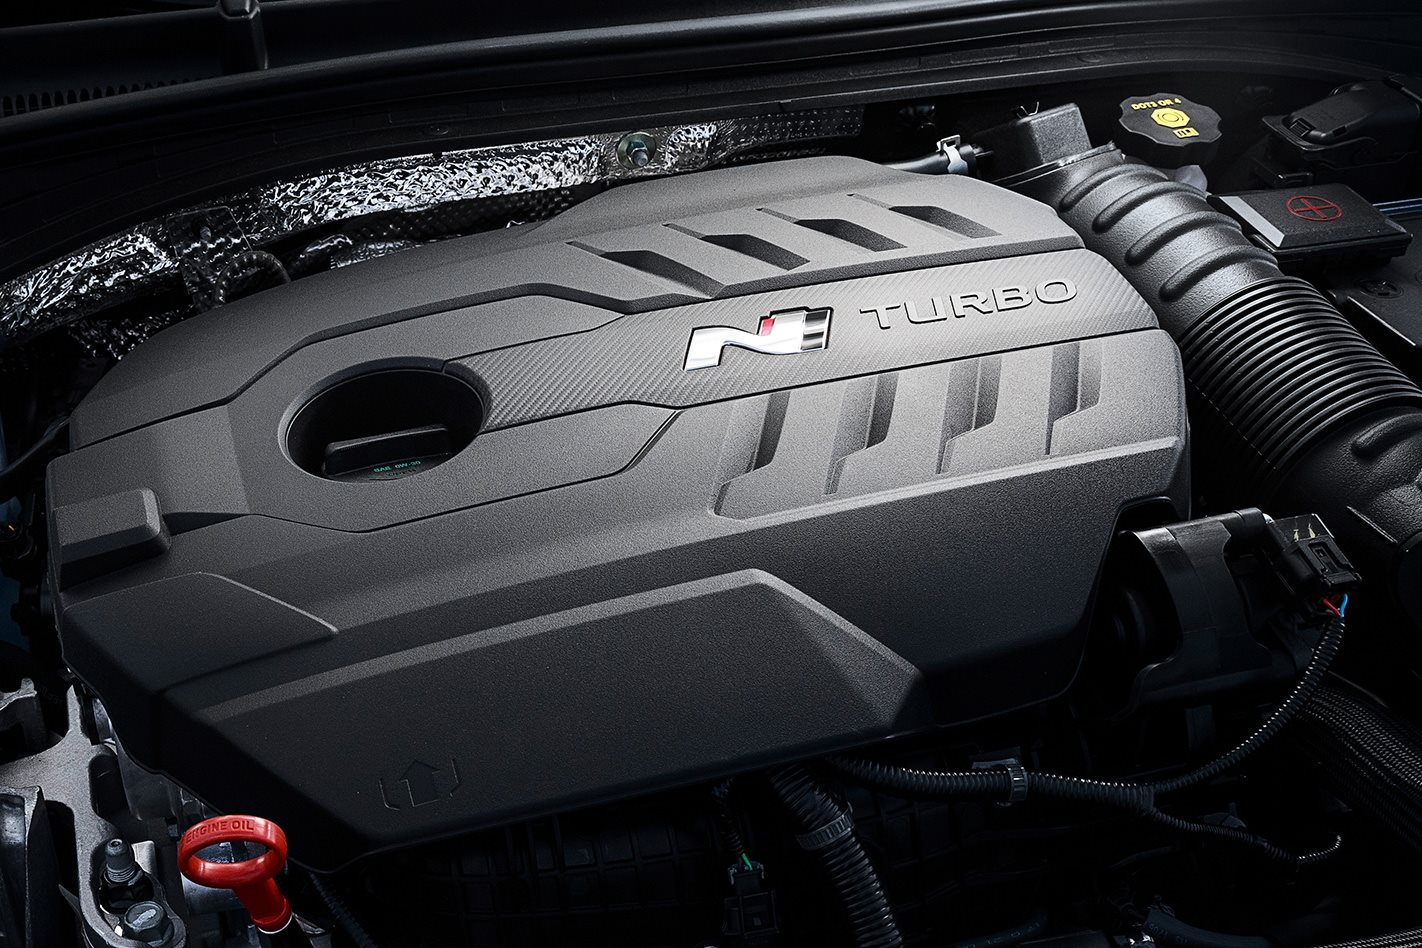 2018 Hyundai i30 N engine